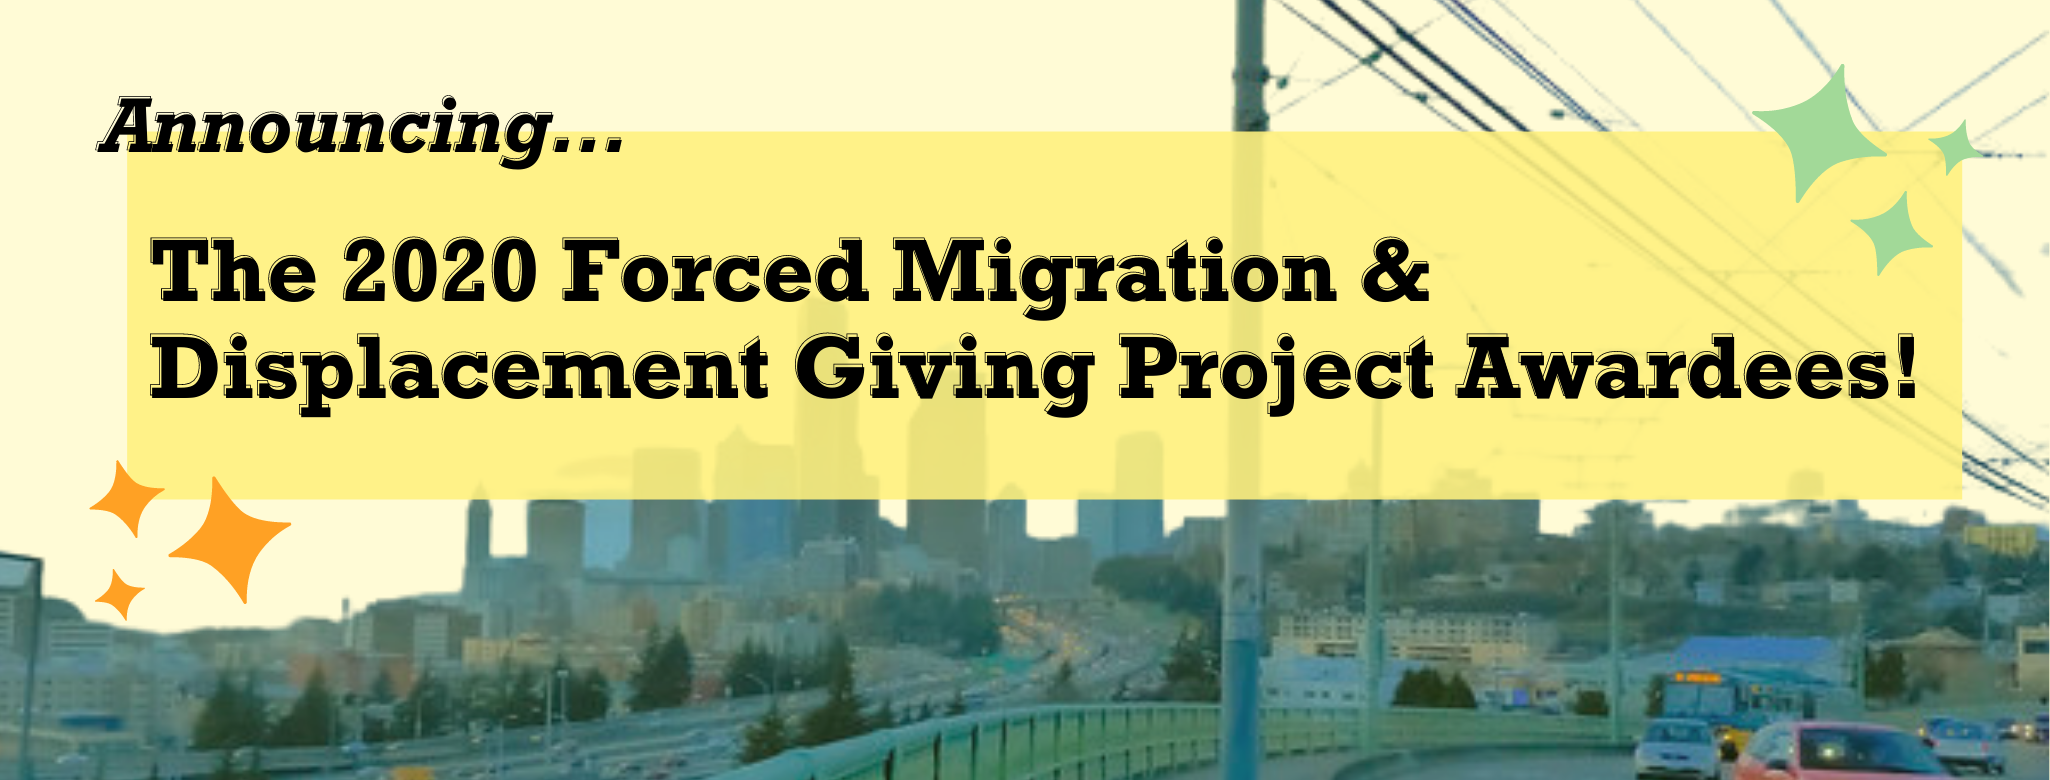 Rectangular banner with light yellow background and picture of the Jose Rizal bridge in Seattle with the city in the background. Black text on a bright yellow box reads Announcing the 2020 Forced Migration and Displacement Awardees.